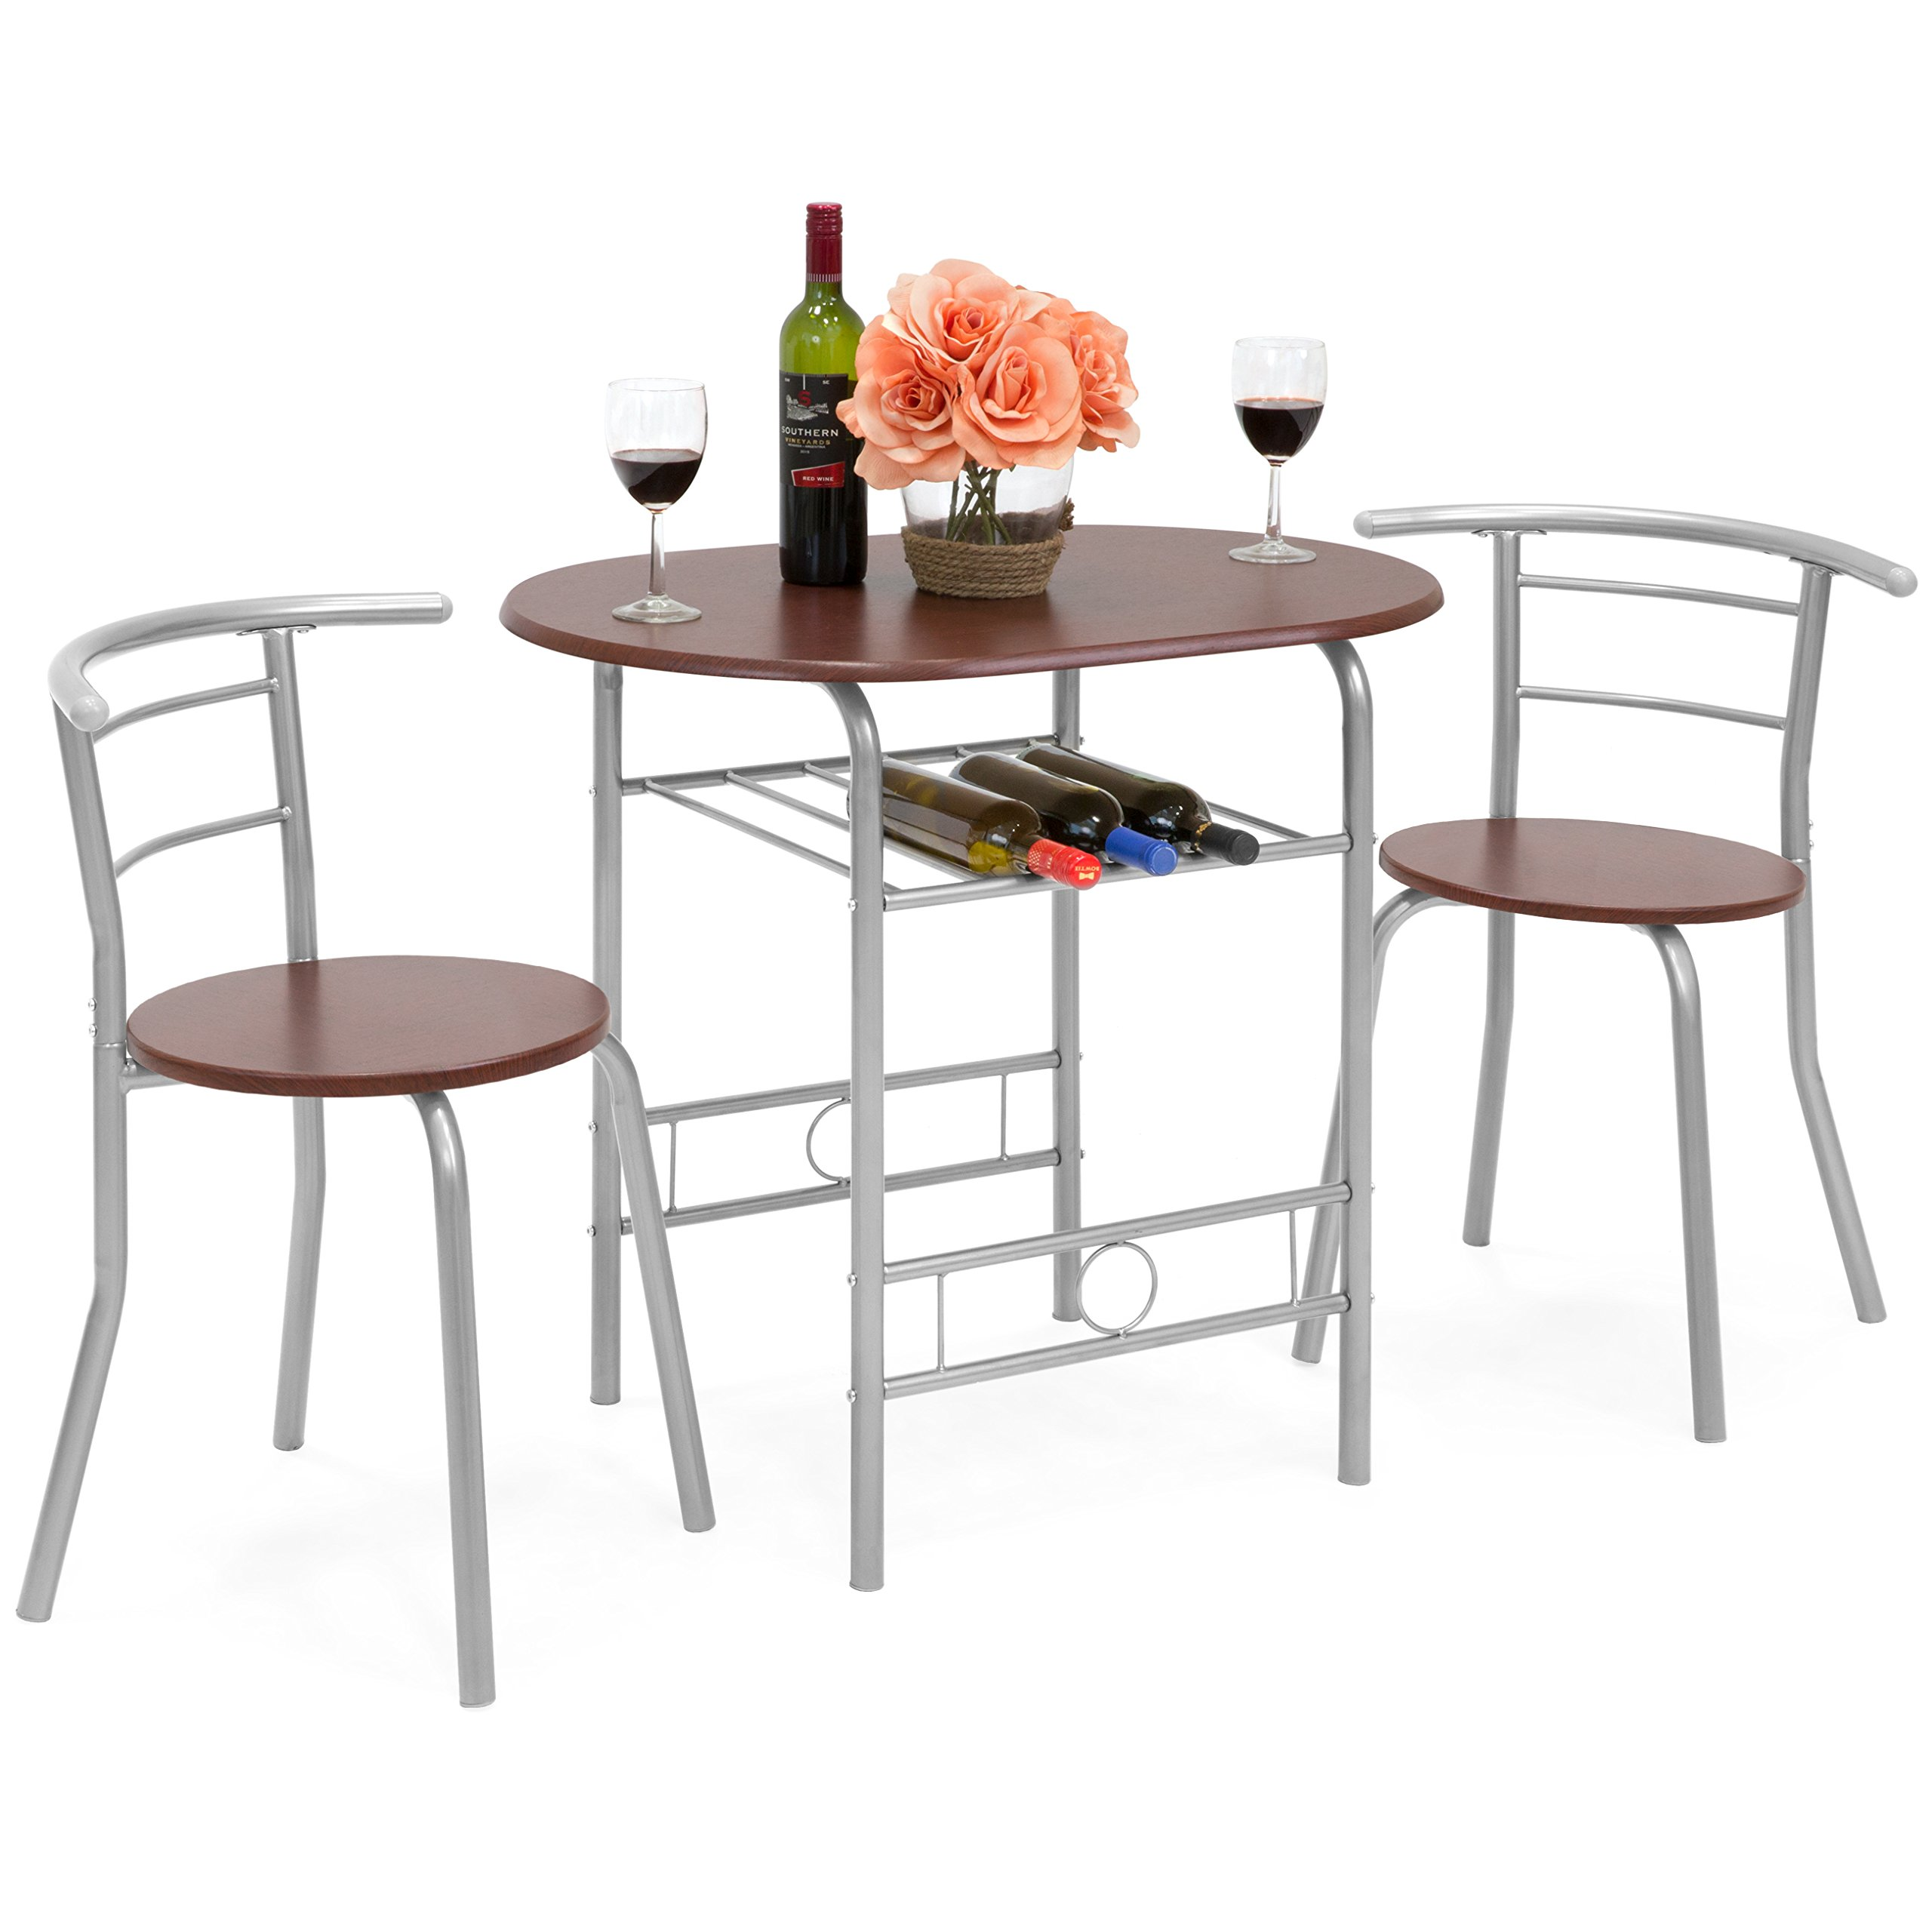 Best Choice Products 3-Piece Wooden Kitchen Dining Room Round Table and Chairs Set w/Built in Wine Rack (Espresso) by Best Choice Products